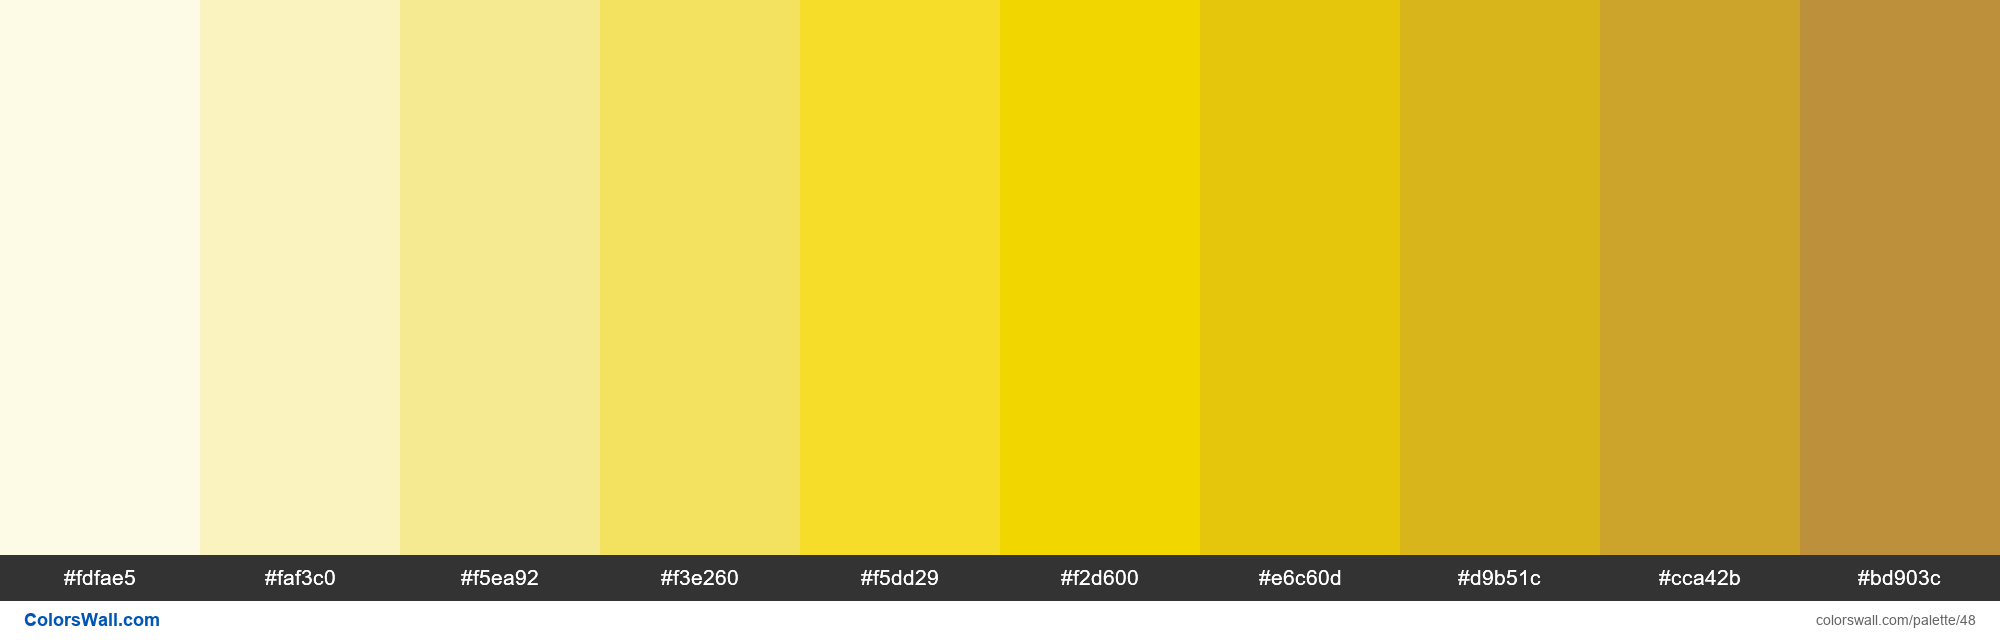 Trello Yellow colors palette HEX RGB codes